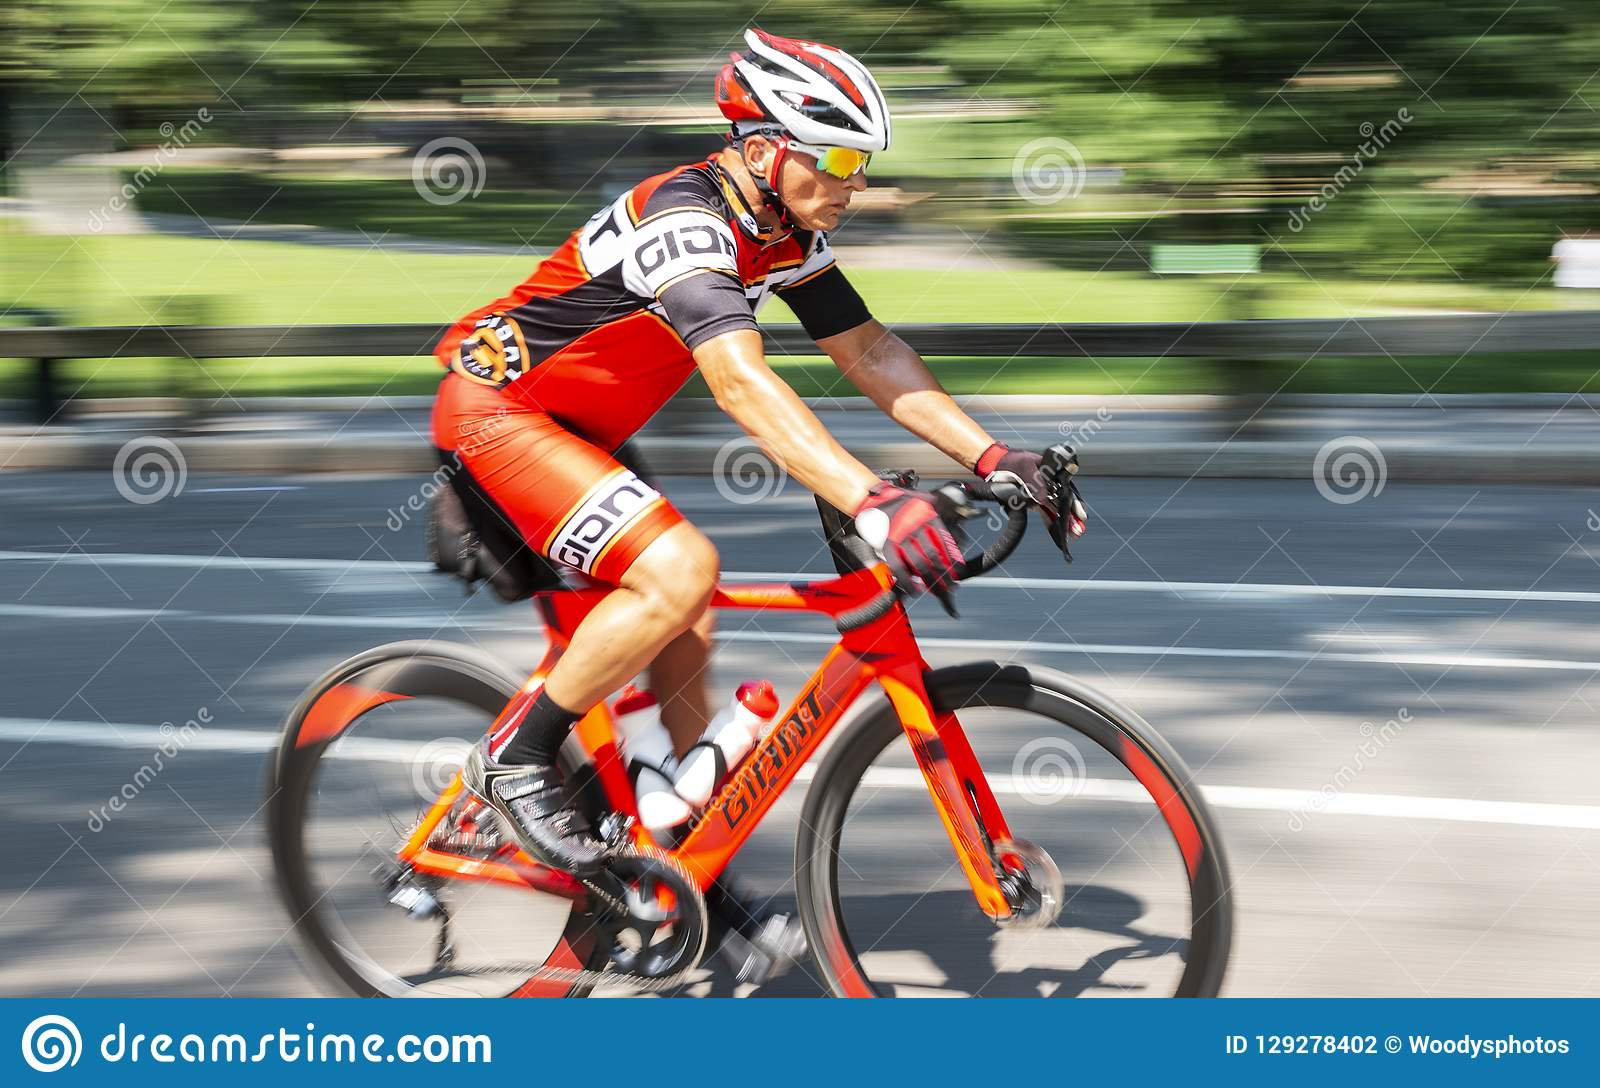 Man Riding Orange Racing Bike On Road Blurred Background Editorial